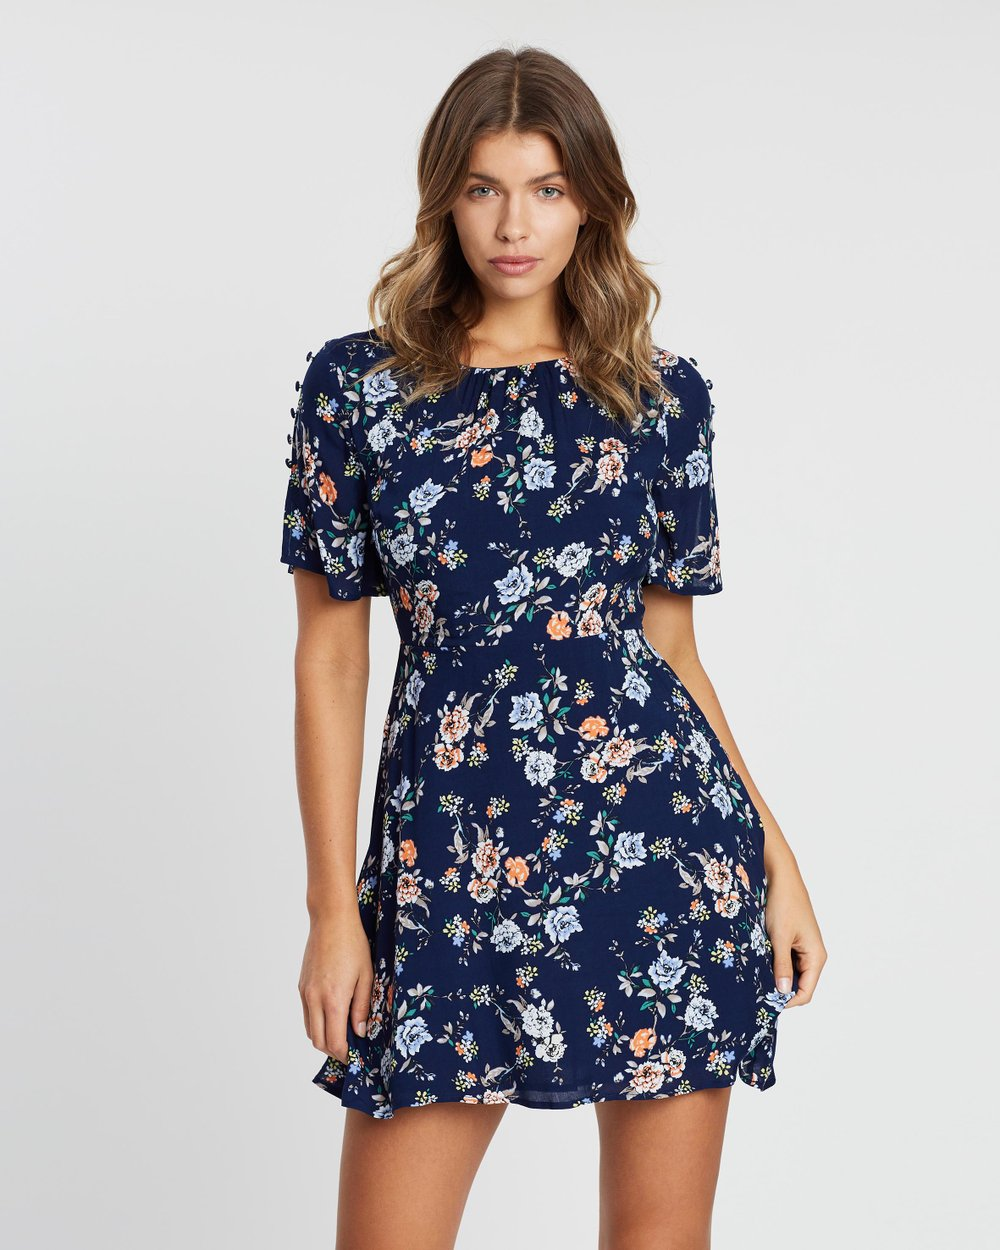 f4f041557d ICONIC EXCLUSIVE - Olivia Floral Dress by Atmos Here Online